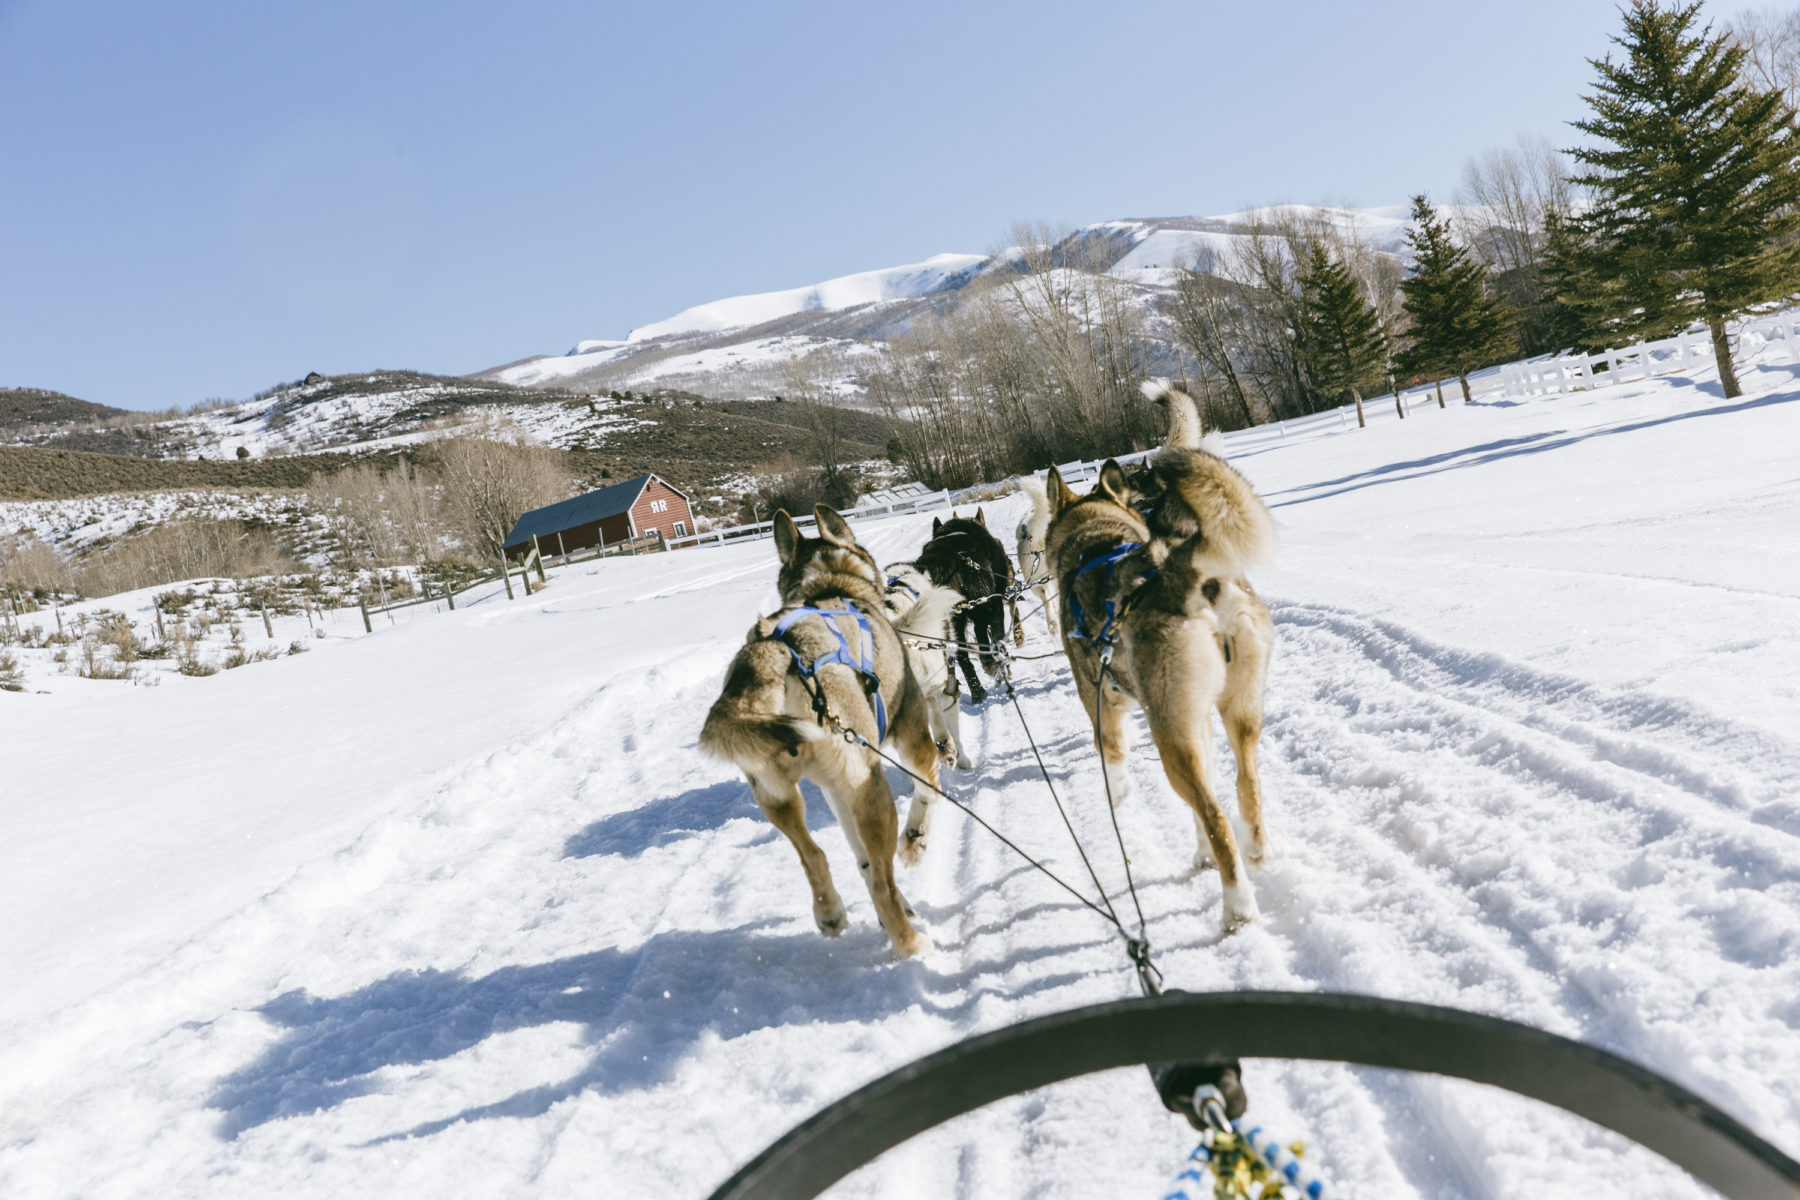 marriott-dog-sledding-utah-2016-0373